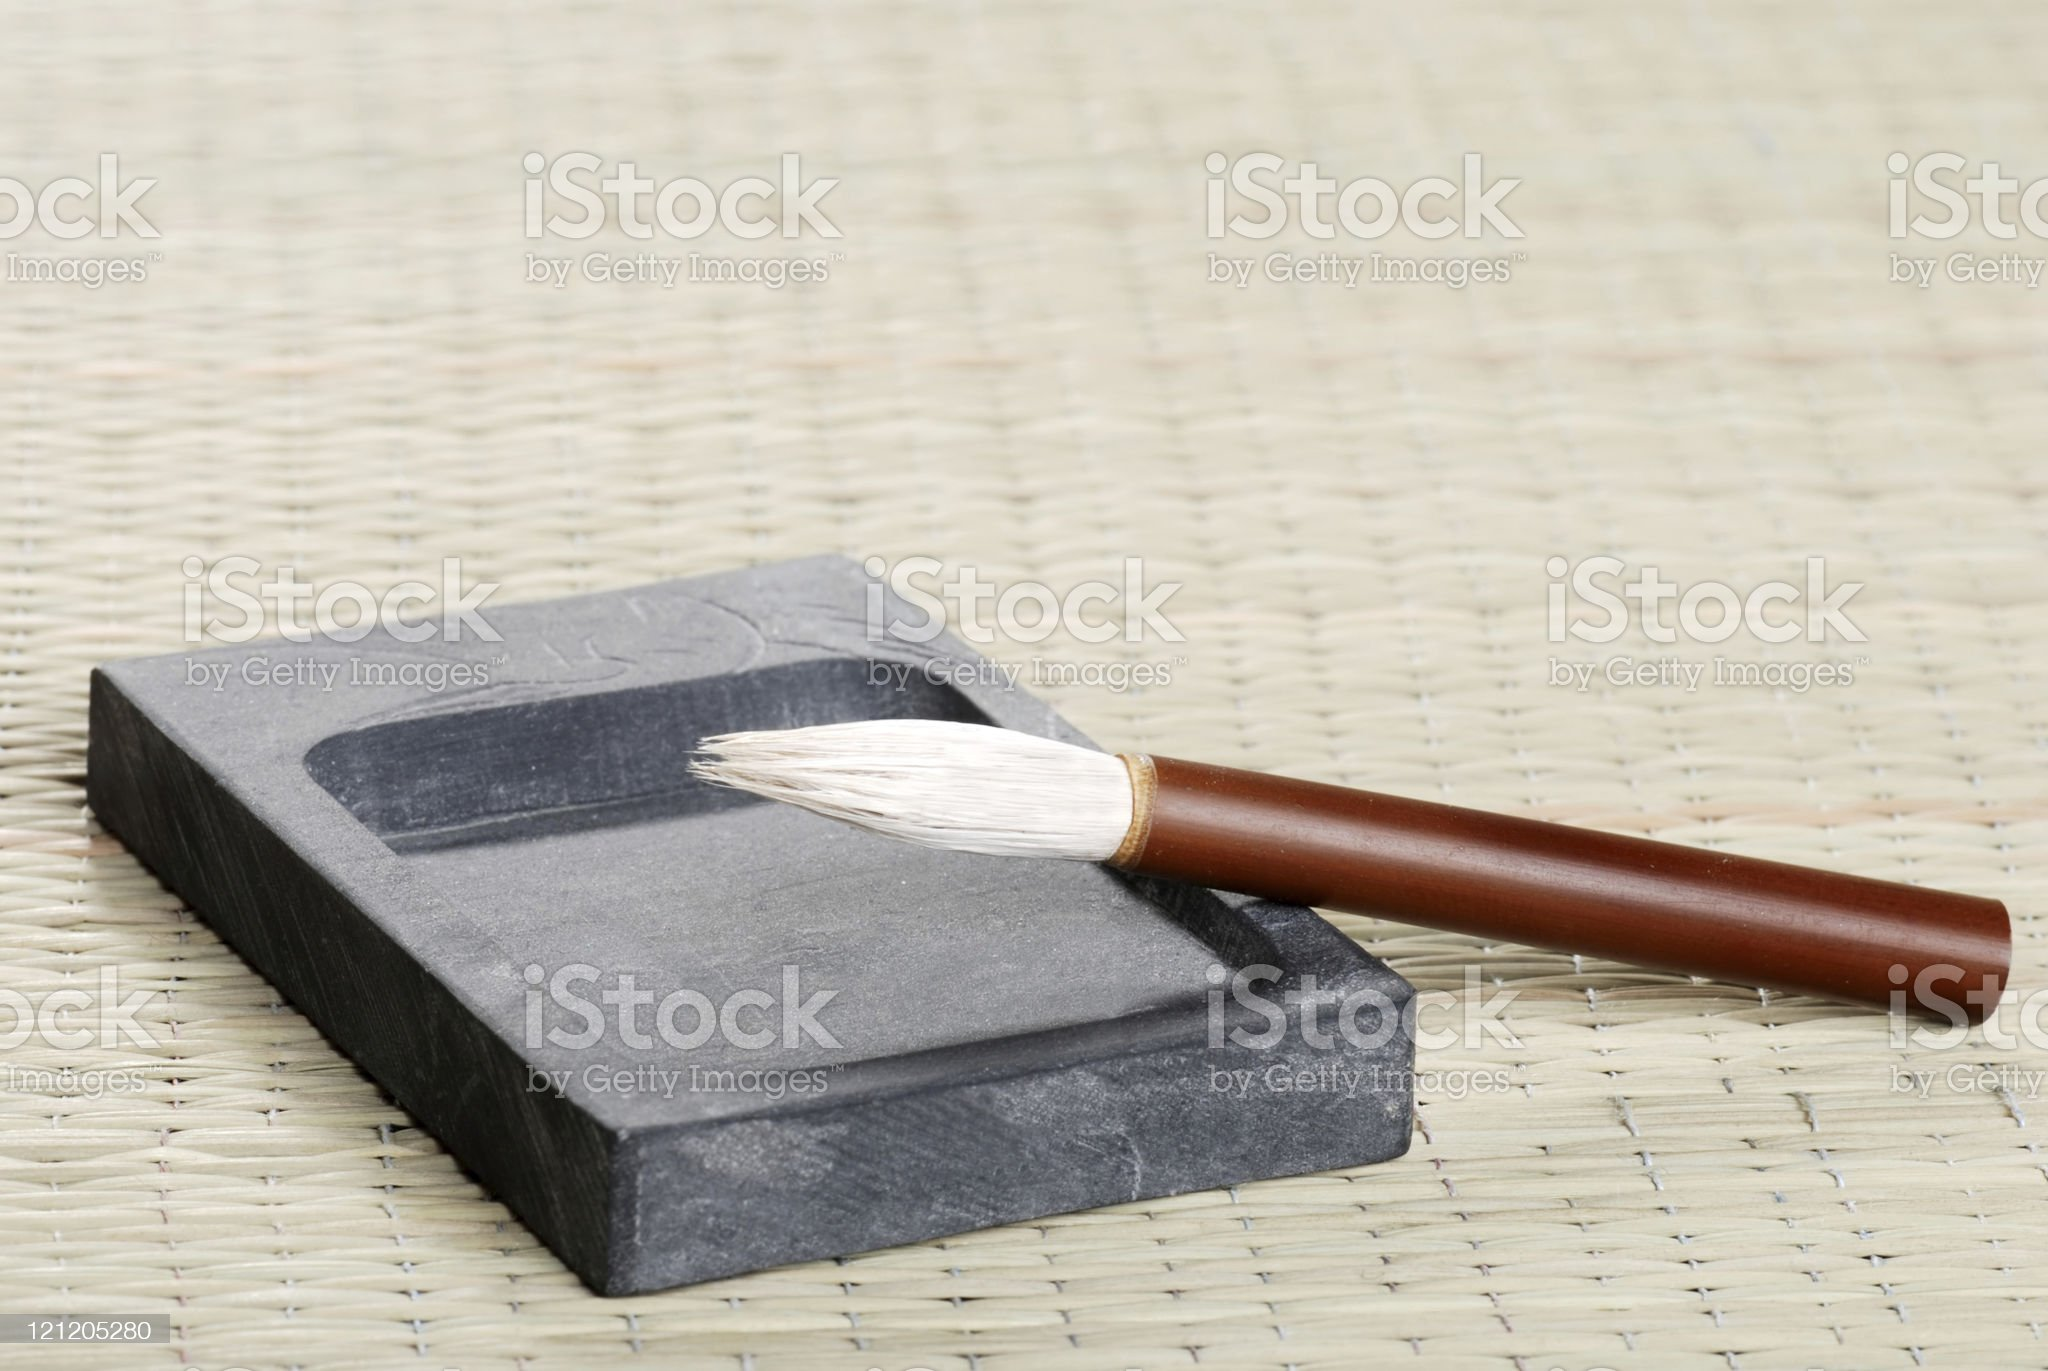 ink stone and calligraphy brush royalty-free stock photo